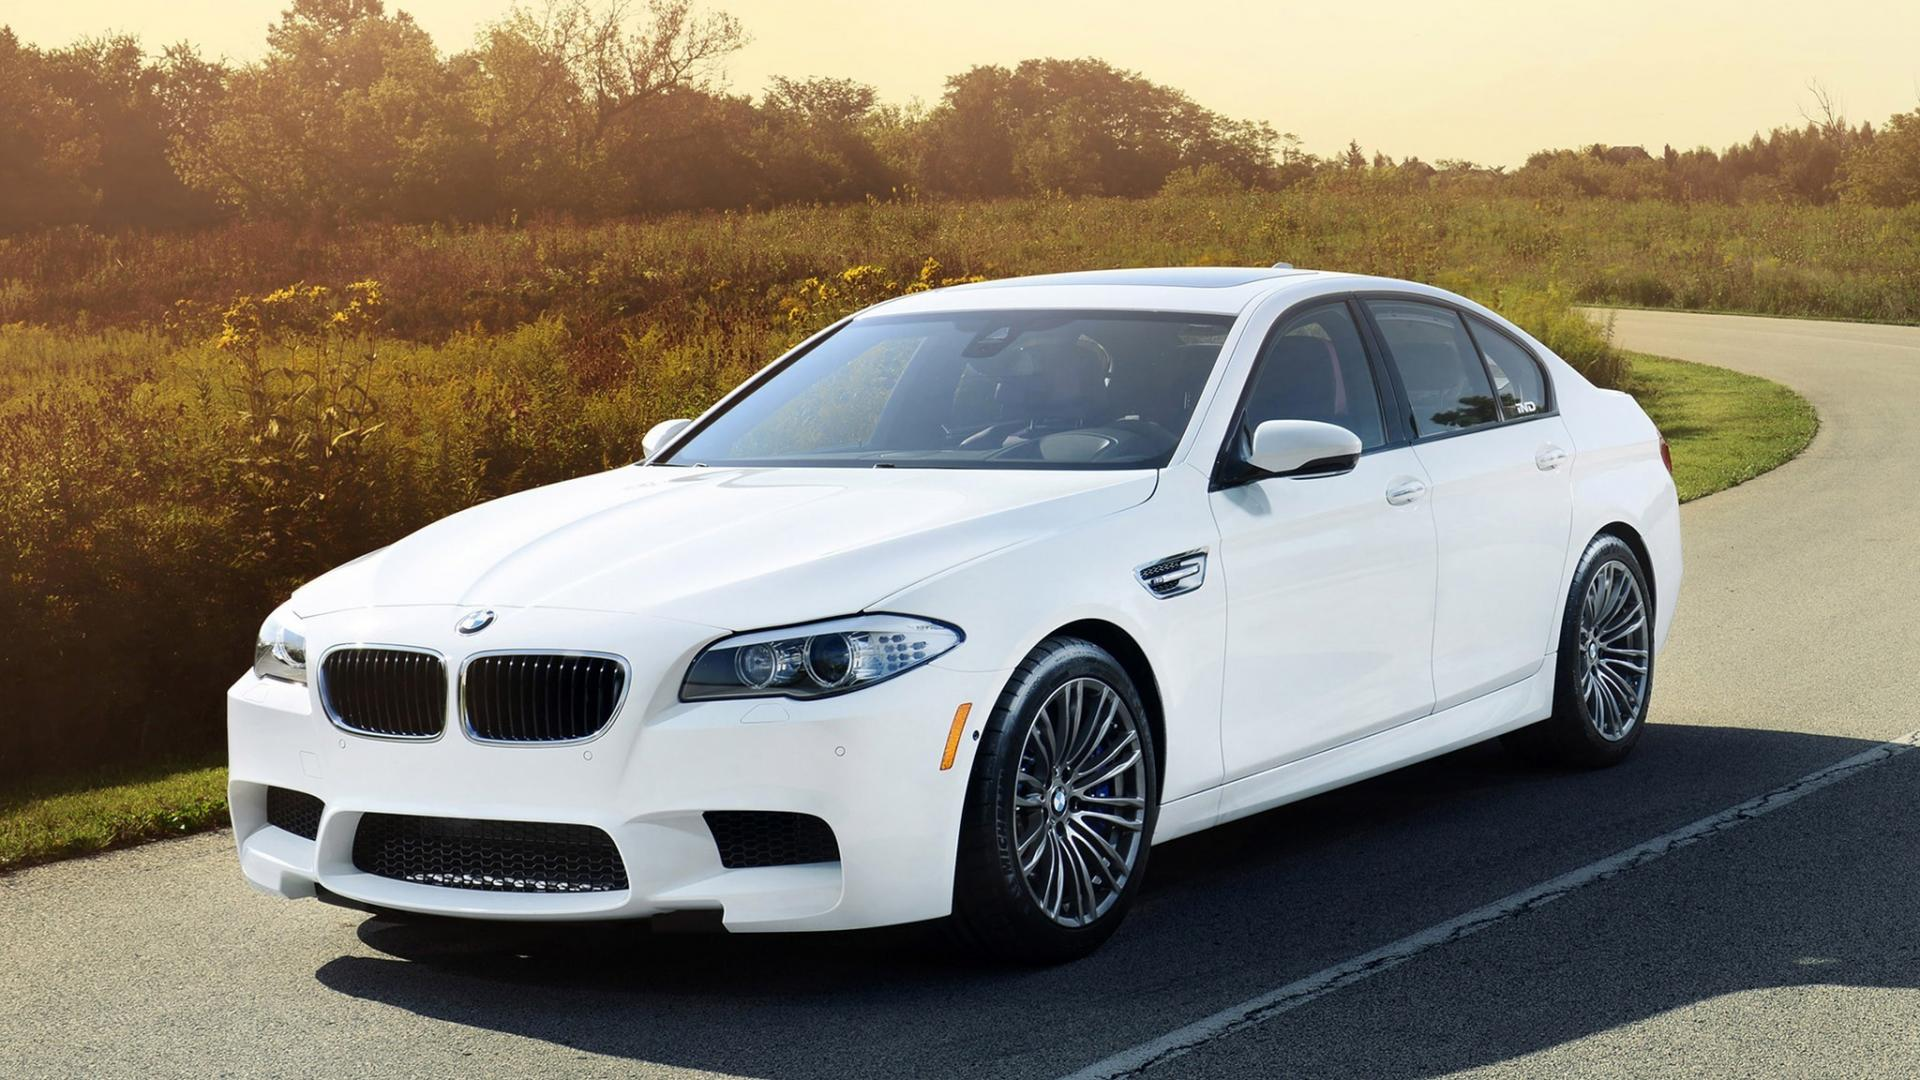 Cars vehicles bmw m5 f10 ind distribution wallpaper | (70673)